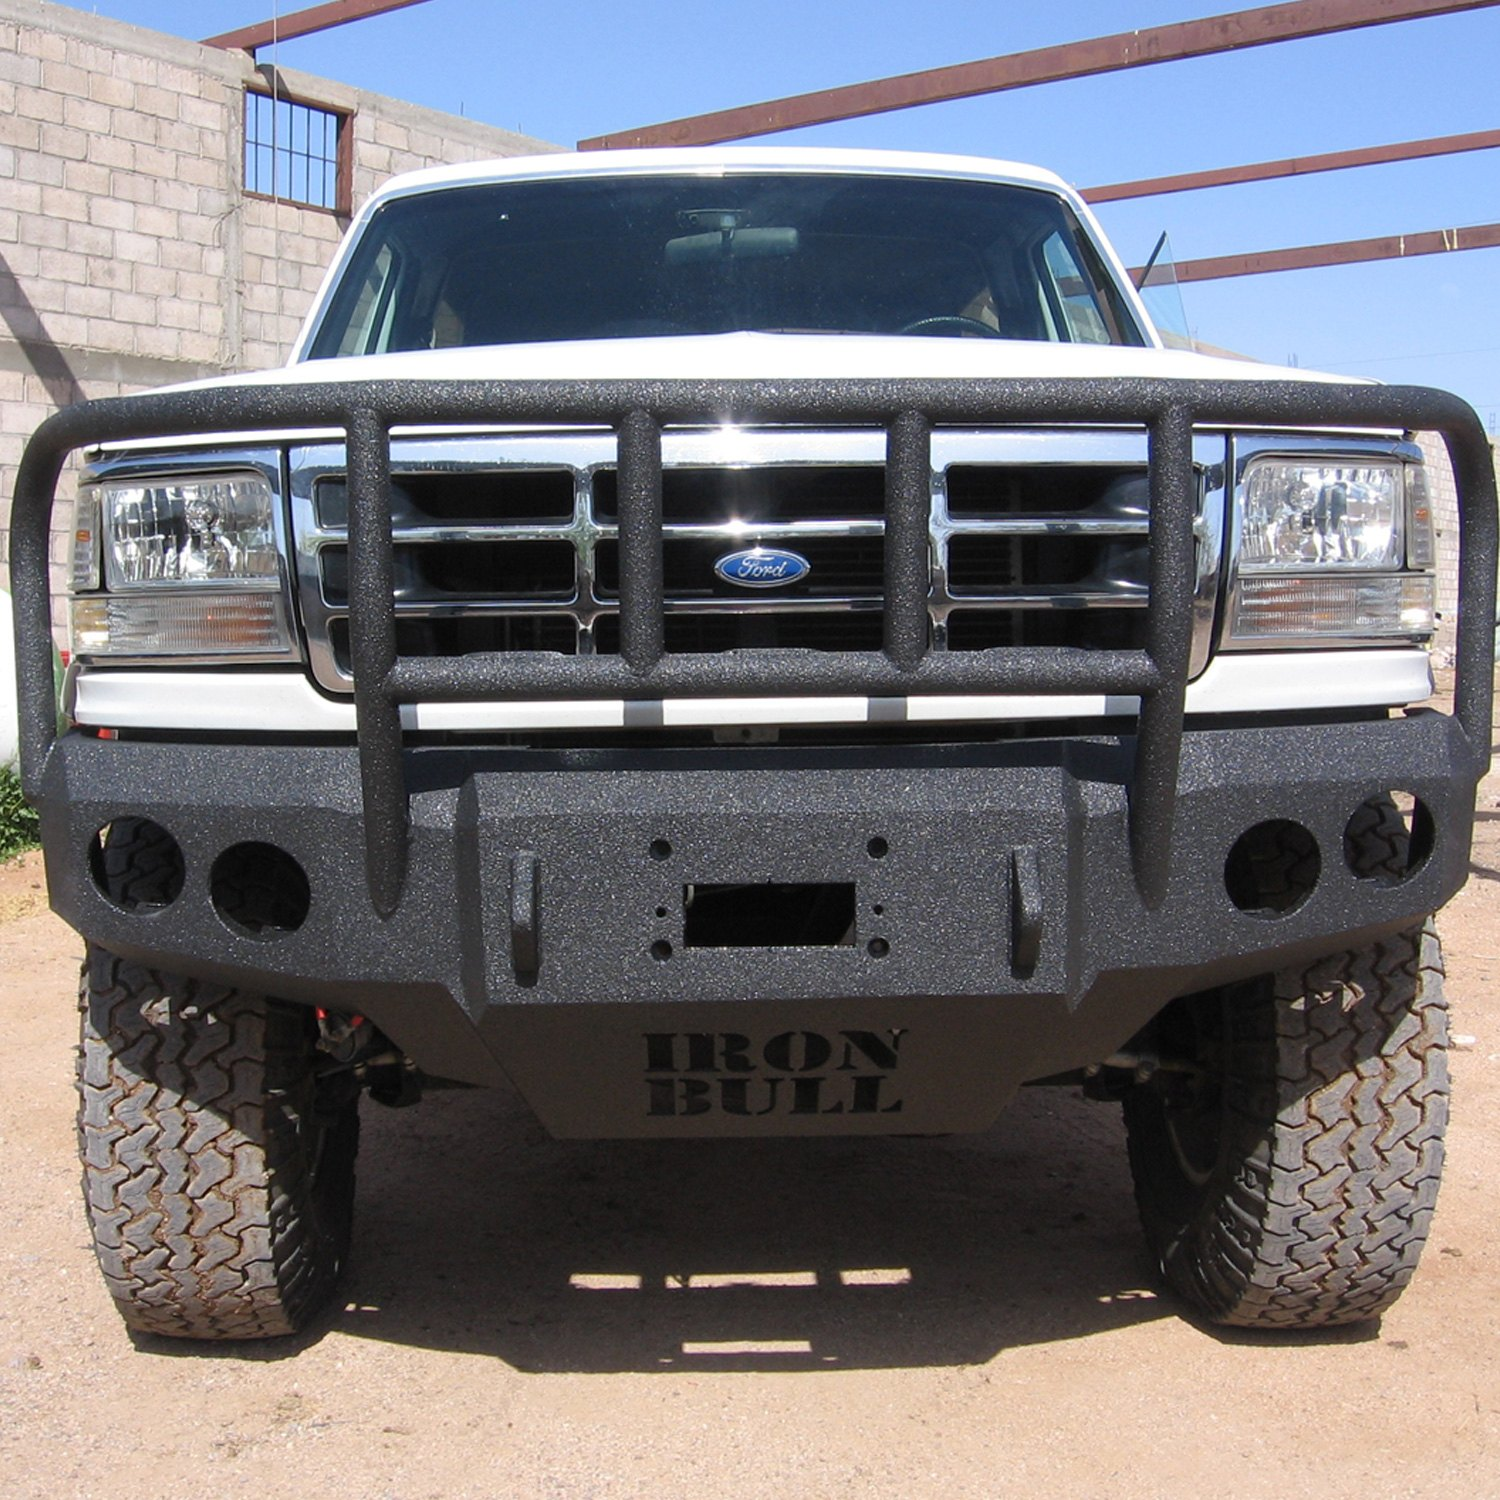 Iron Bull Bumpers : Iron bull bumpers ford bronco full width black